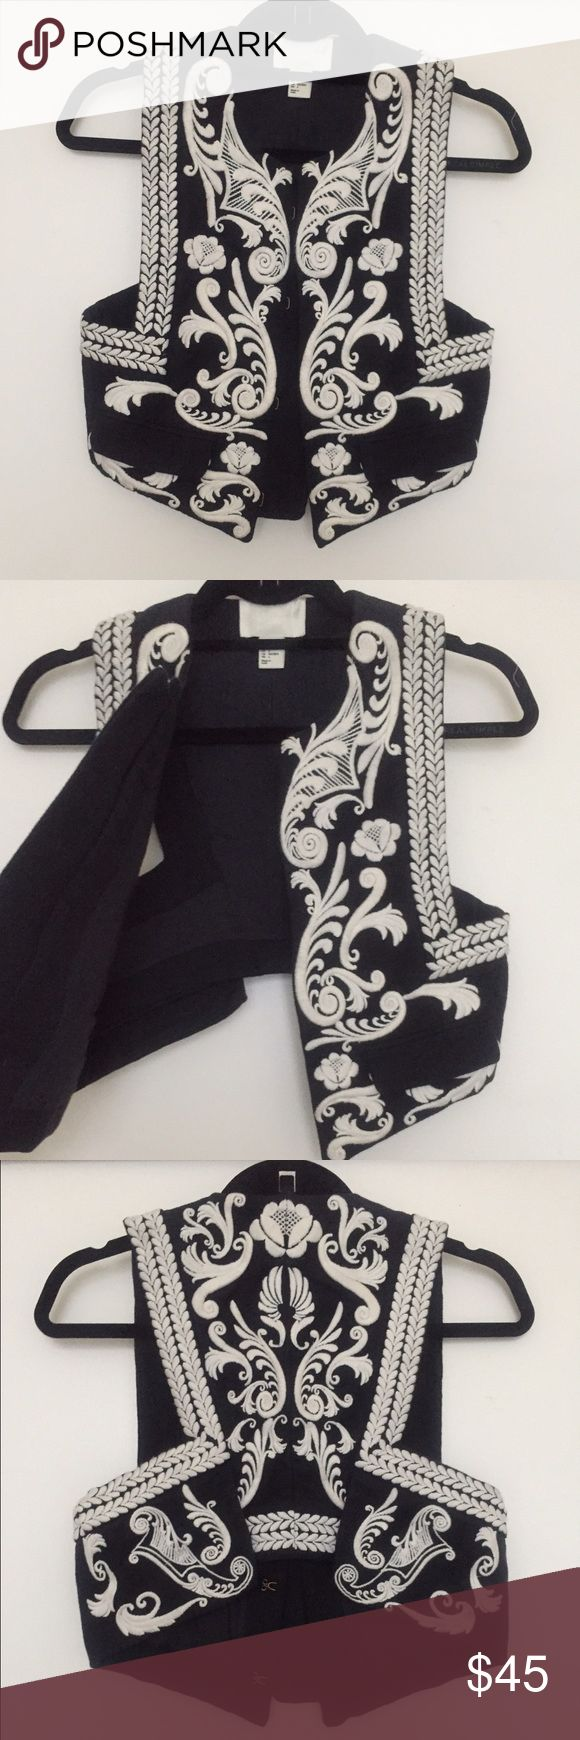 Black and white embroidered bolero vest. Black and white embroidered, bolero vest. Size 4/fits more like size 2. Never been worn. H&M Jackets & Coats Vests